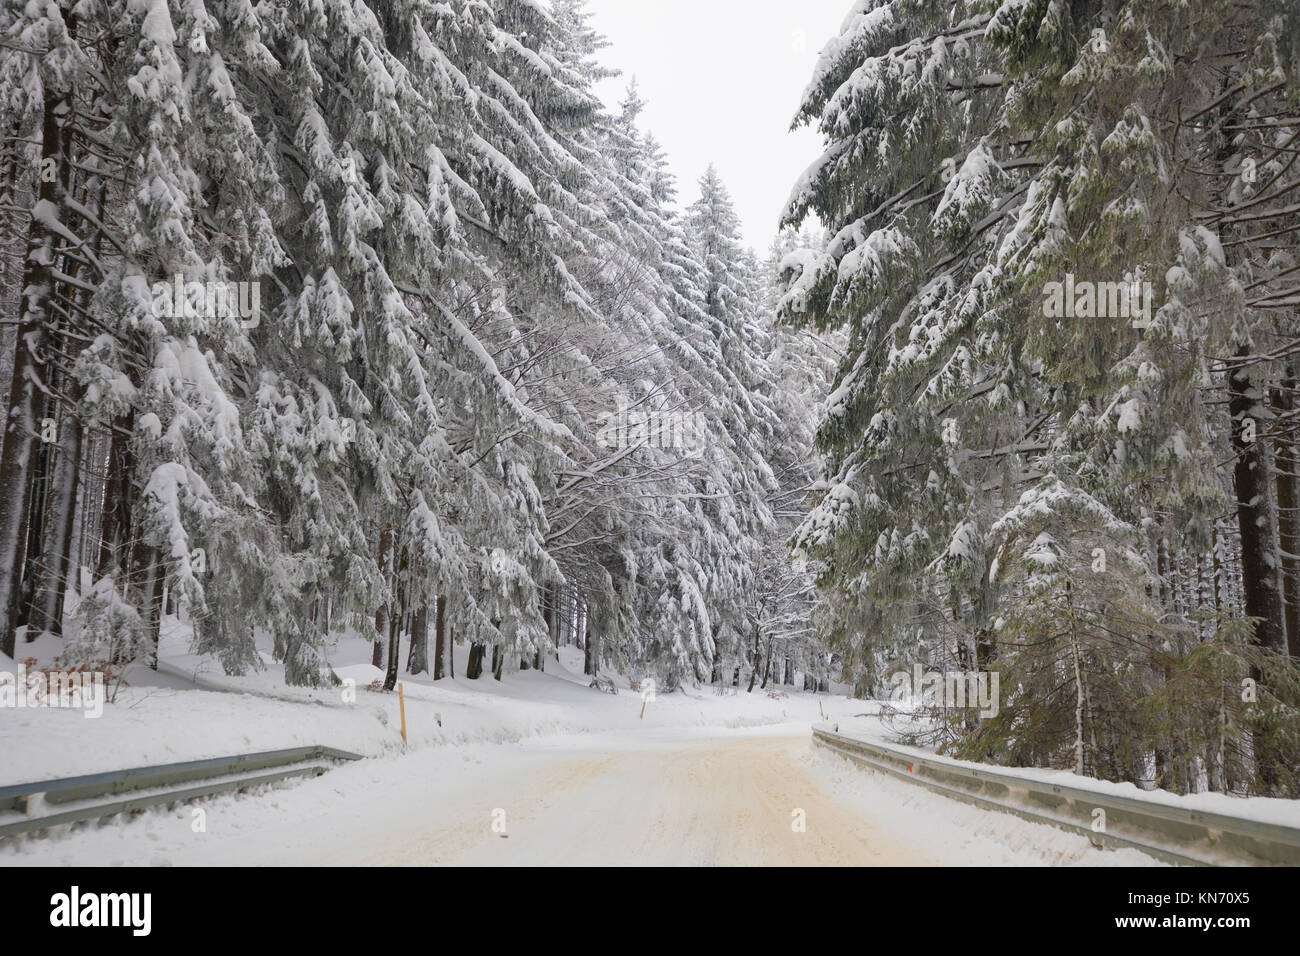 Road and high spruces and snow in mountains - Stock Image